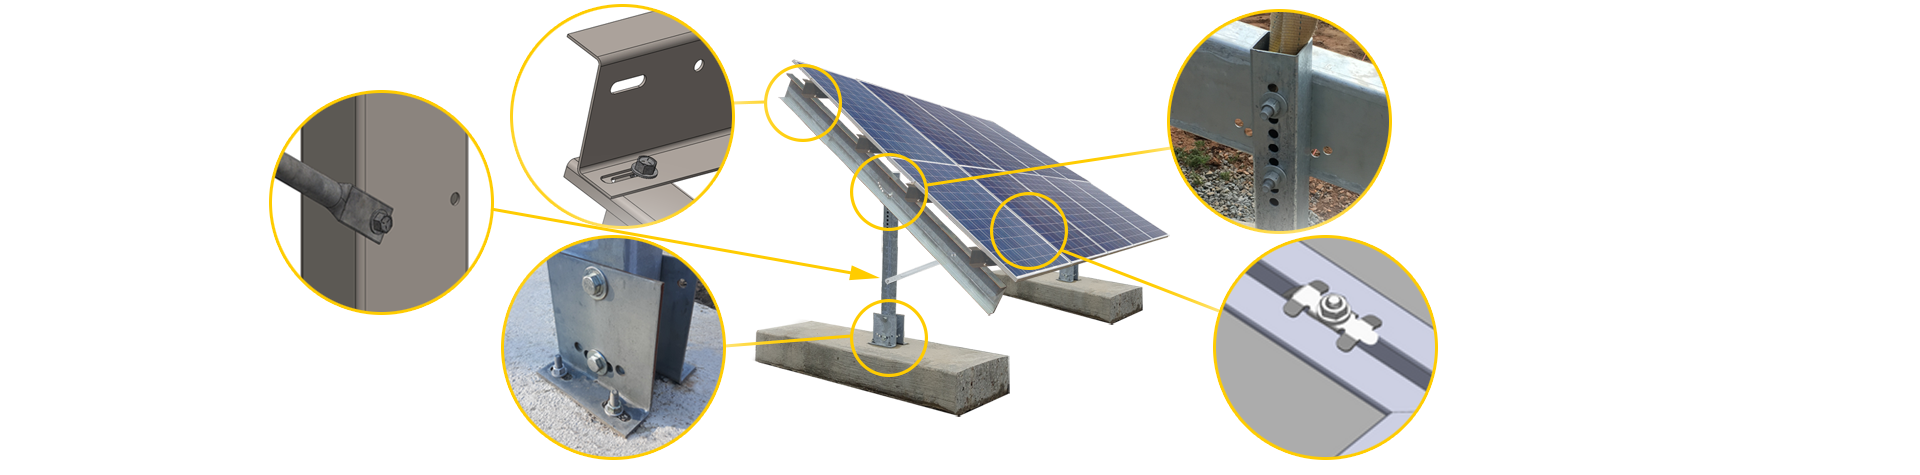 Ballasted ground mount image with ten solar panels mounted two high.